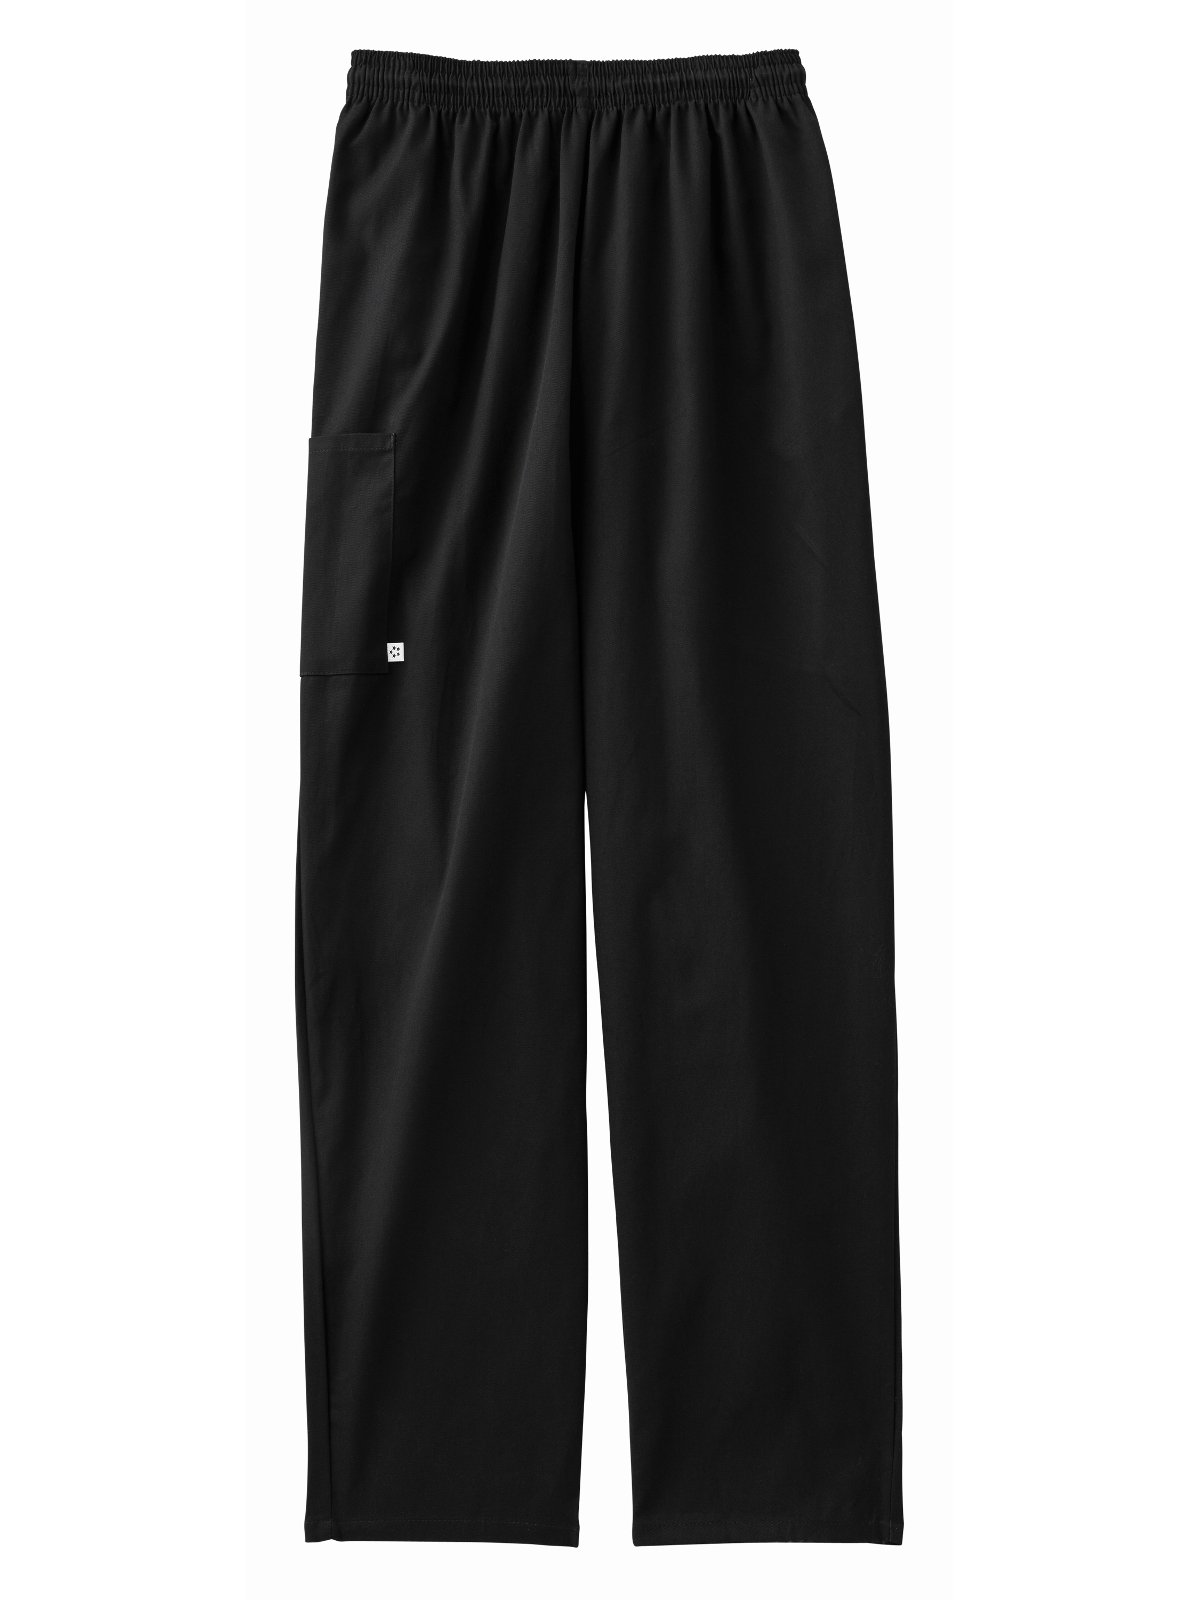 Five Star Chef Apparel 18100 Unisex Pull On Pant Black L by Five Star